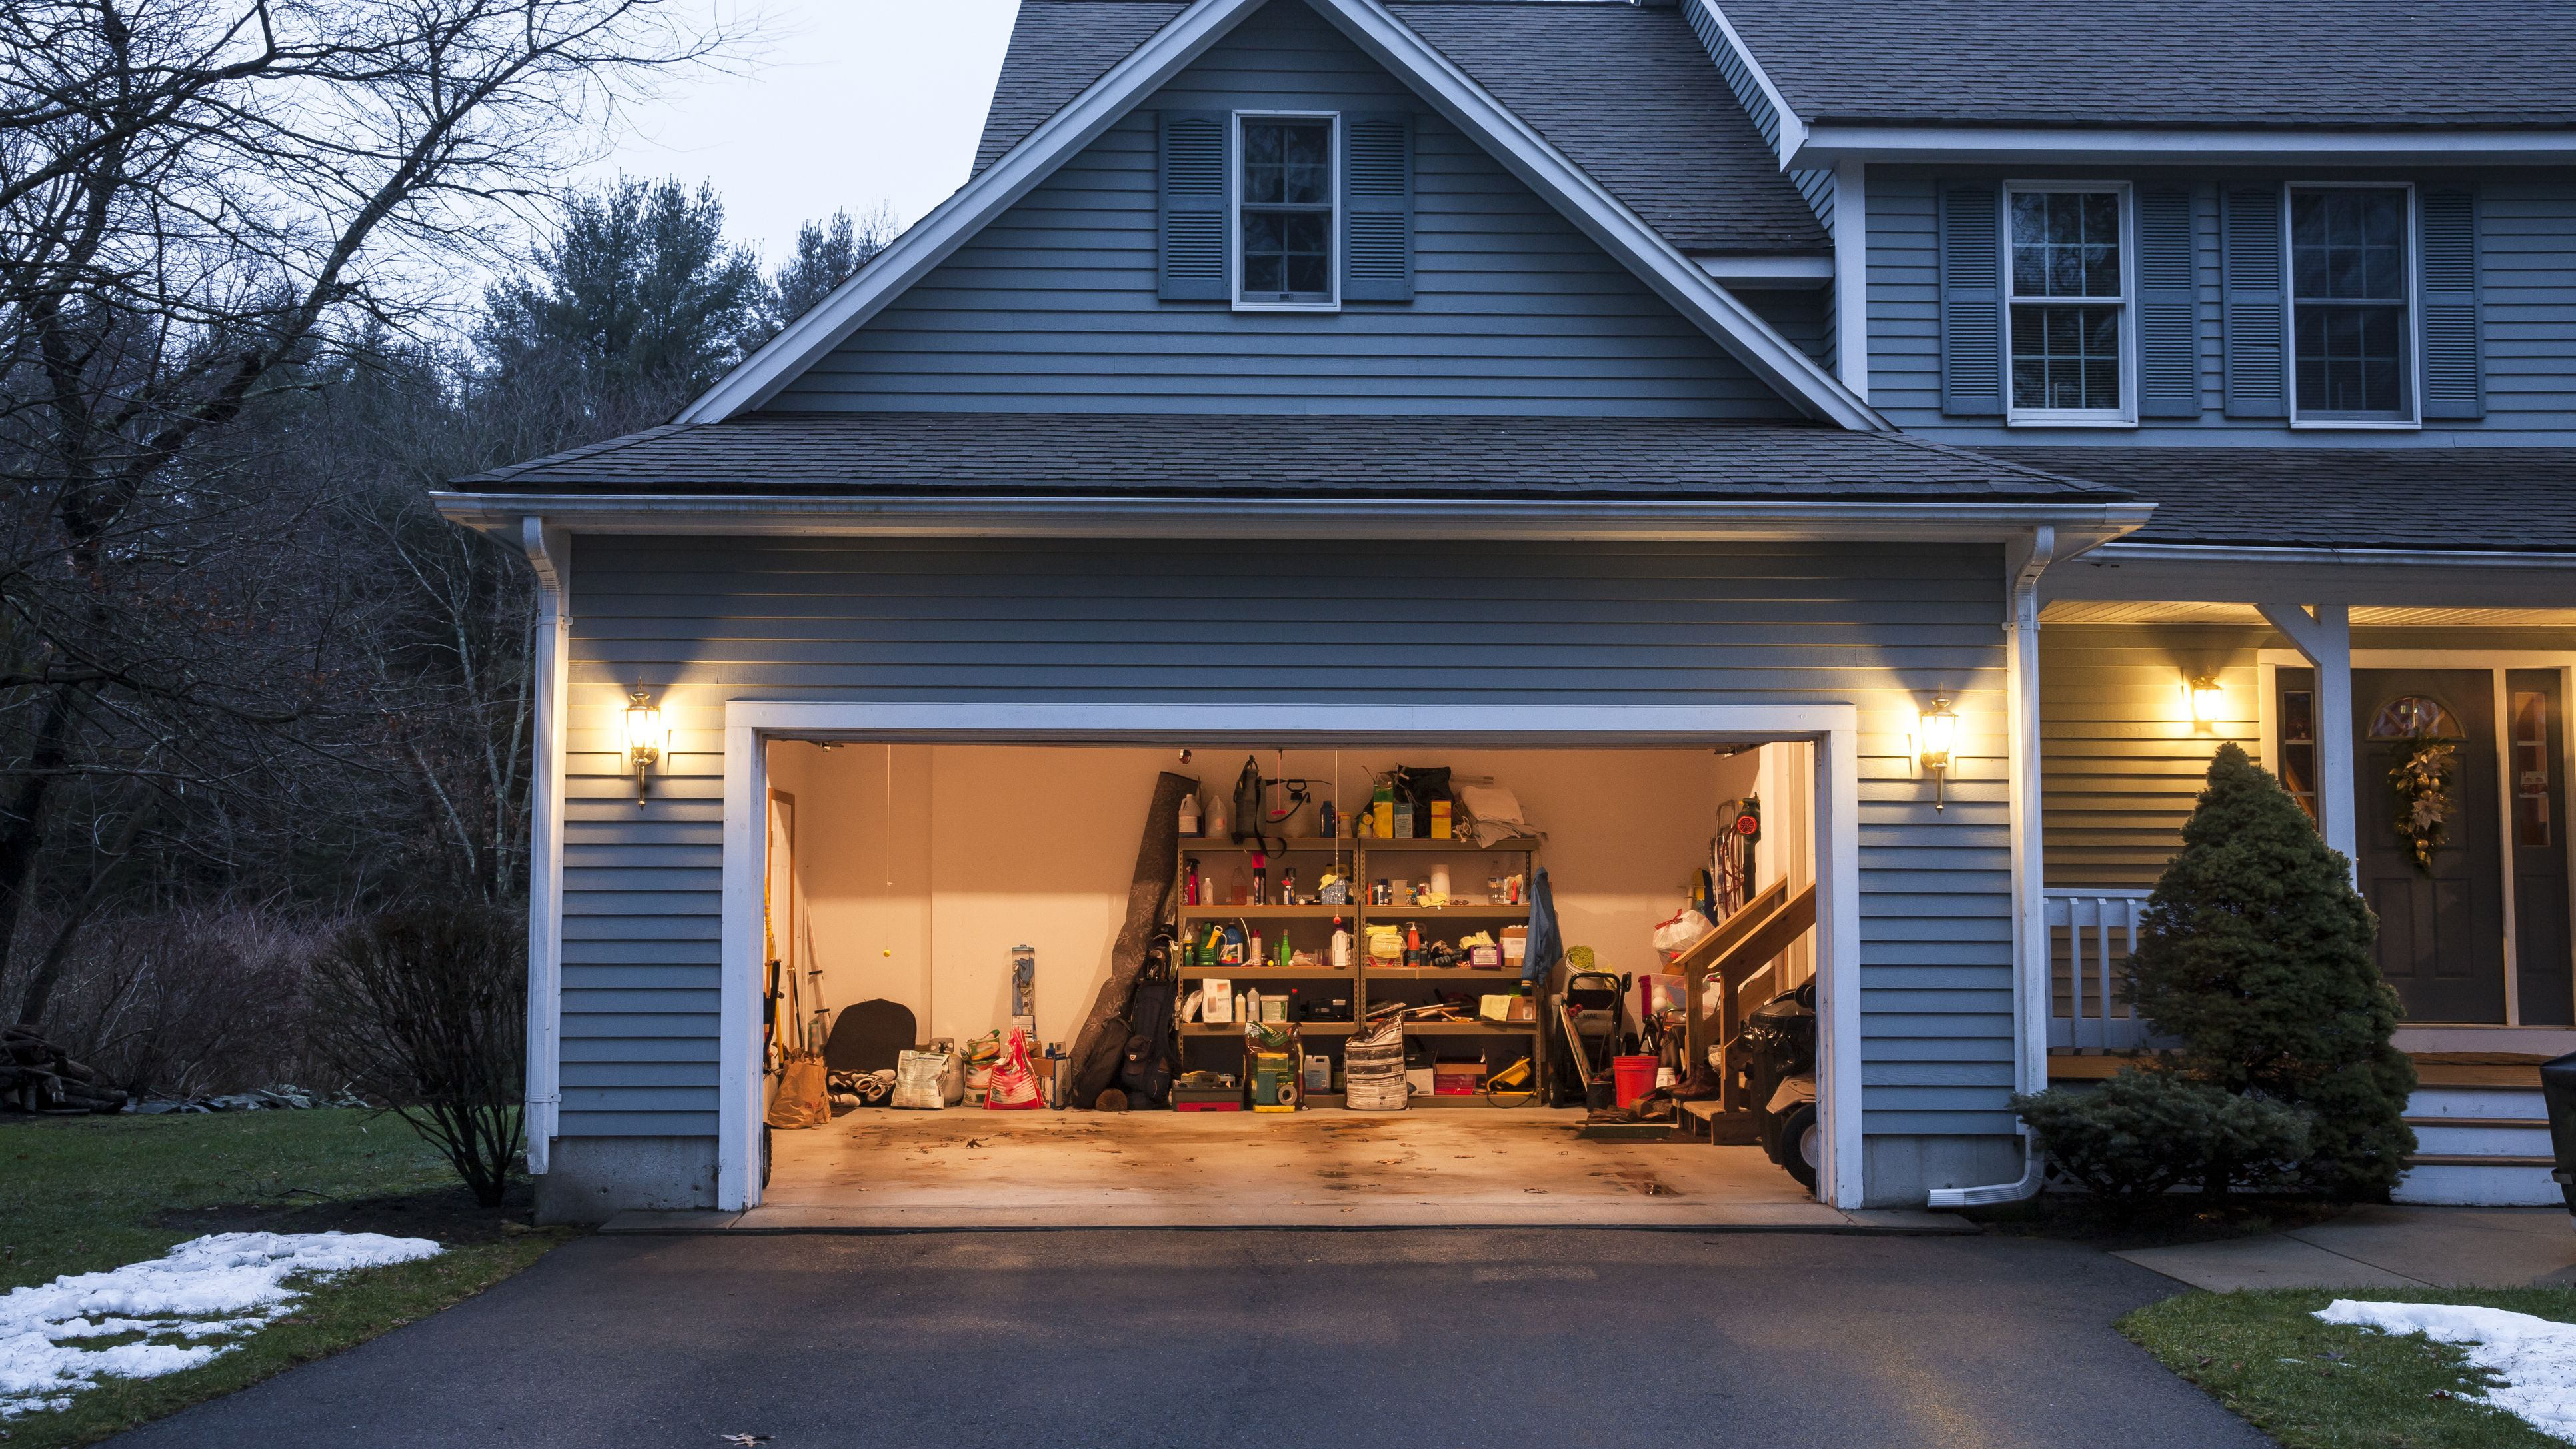 Upgrade Your Home With A Garage Door With Windows